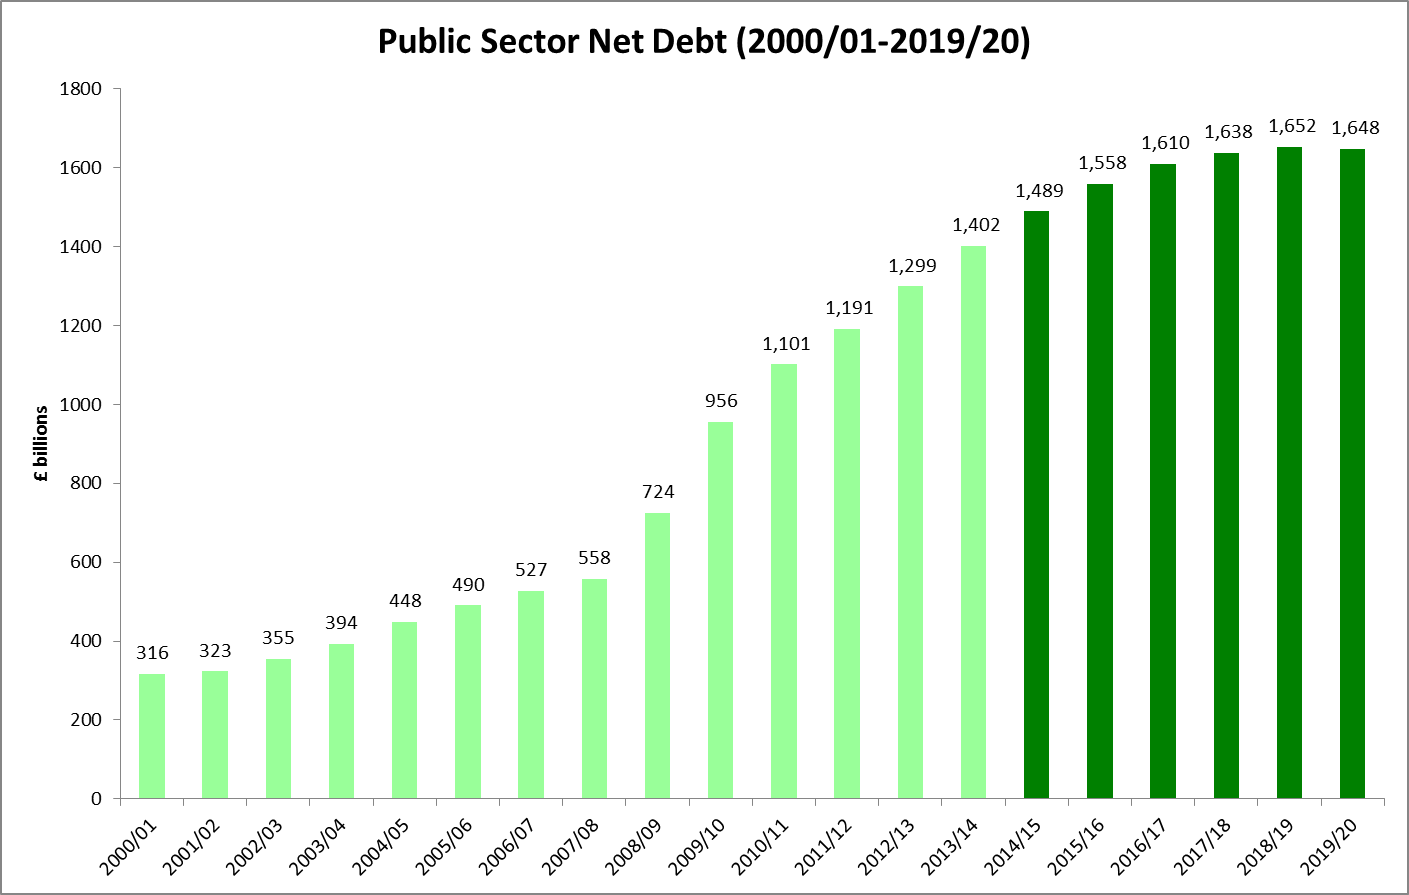 Public Sector Net Debt trend growth